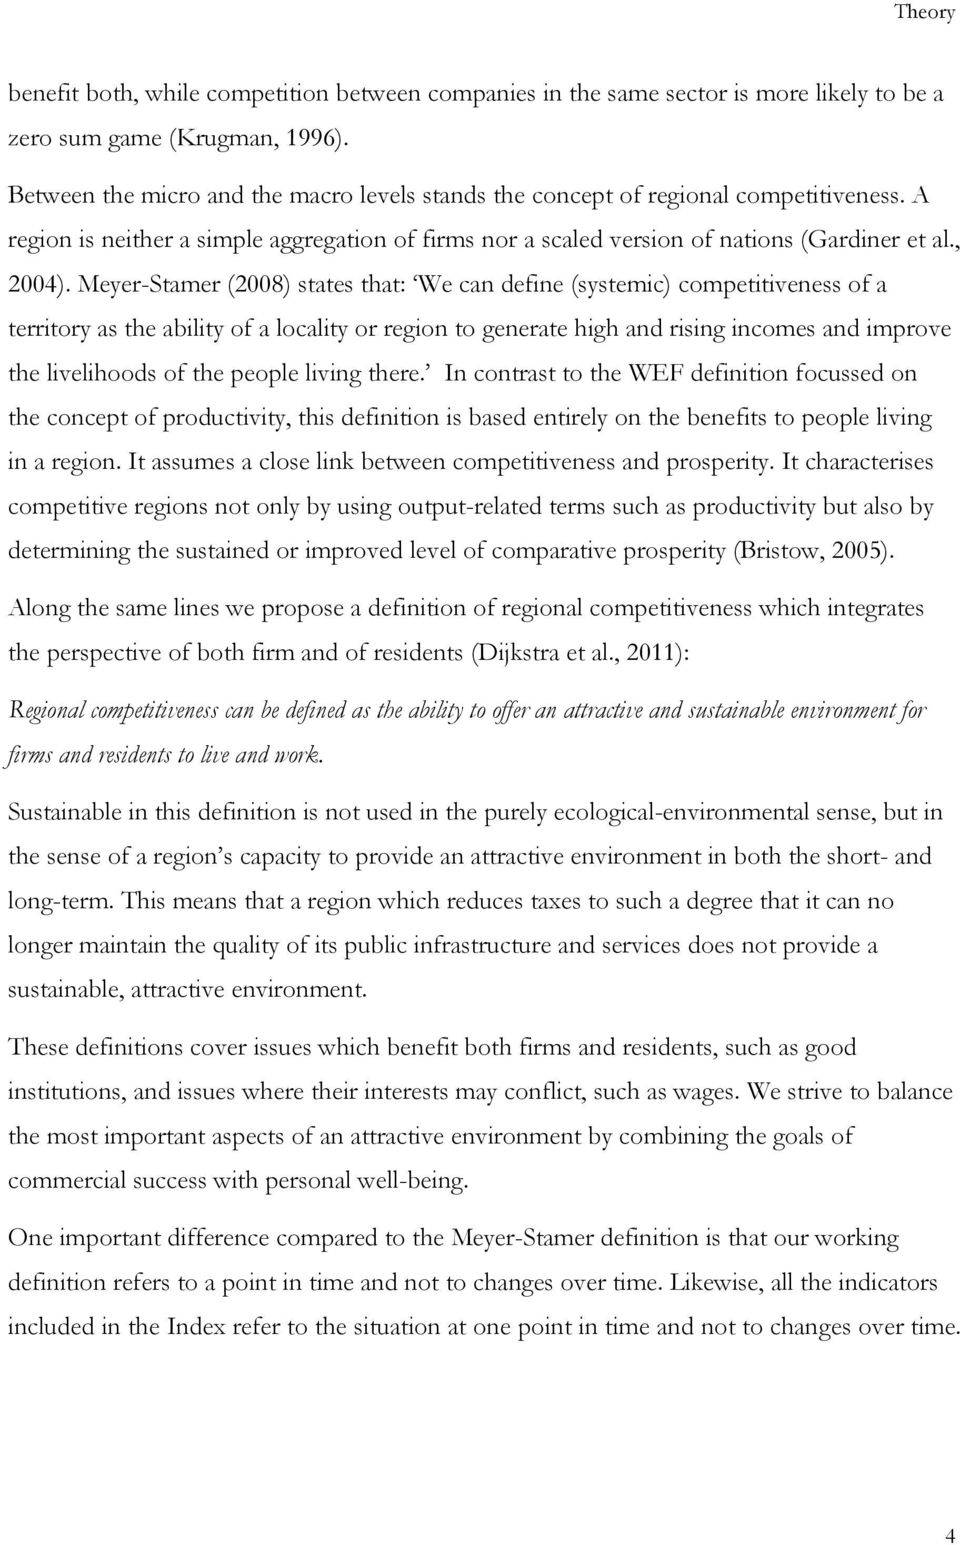 Meyer-Stamer (2008) states that: We can define (systemic) competitiveness of a territory as the ability of a locality or region to generate high and rising incomes and improve the livelihoods of the